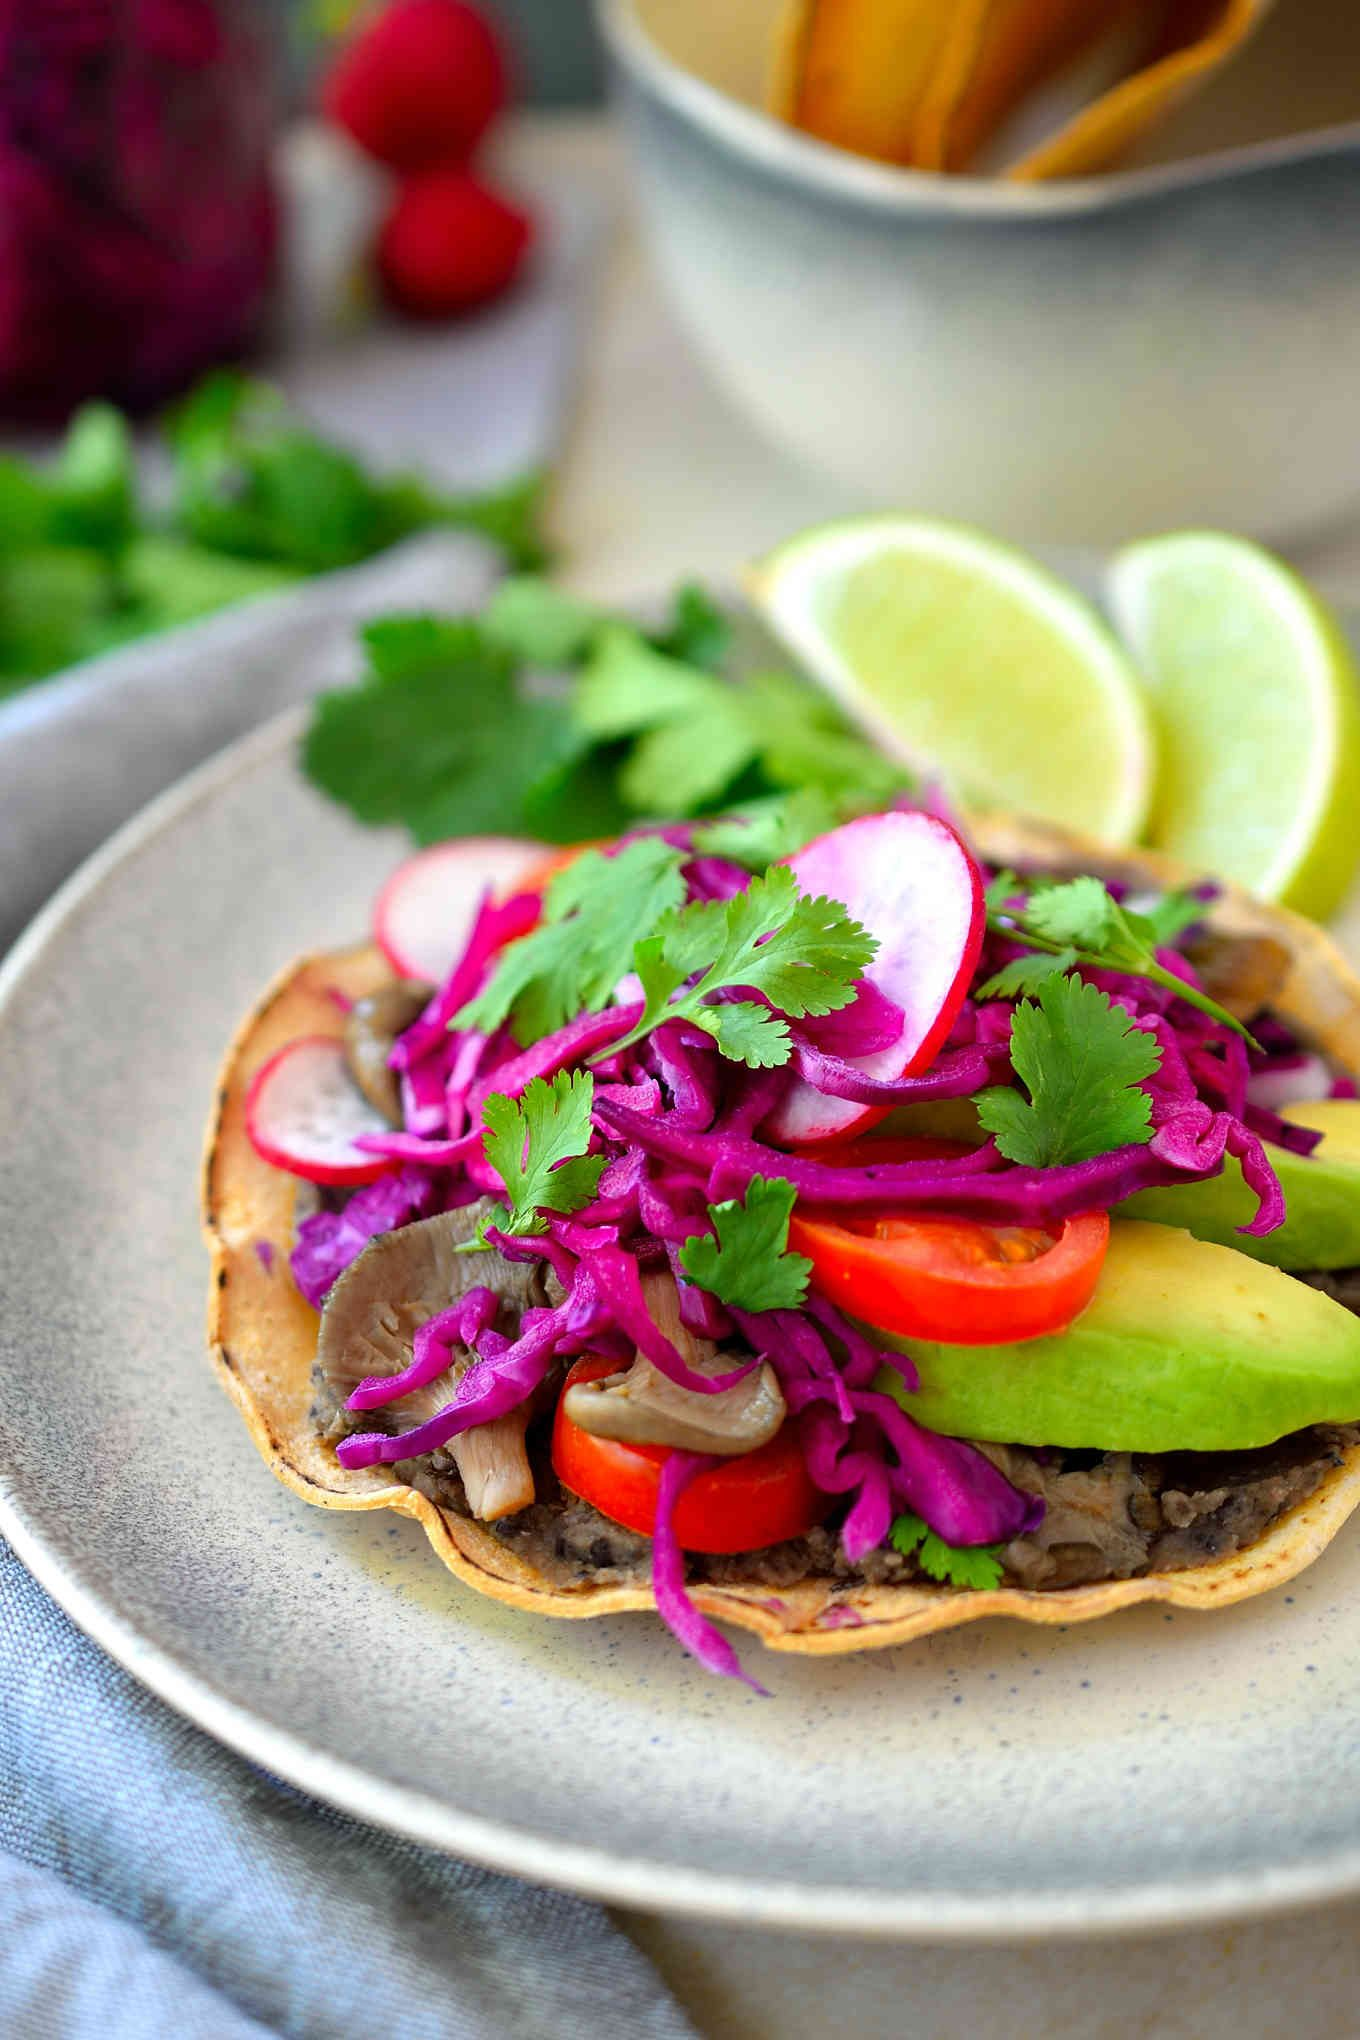 These black bean and mushroom vegan tostadas are easy to put together and totally adaptable to whatever veggies you happen to have on hand.